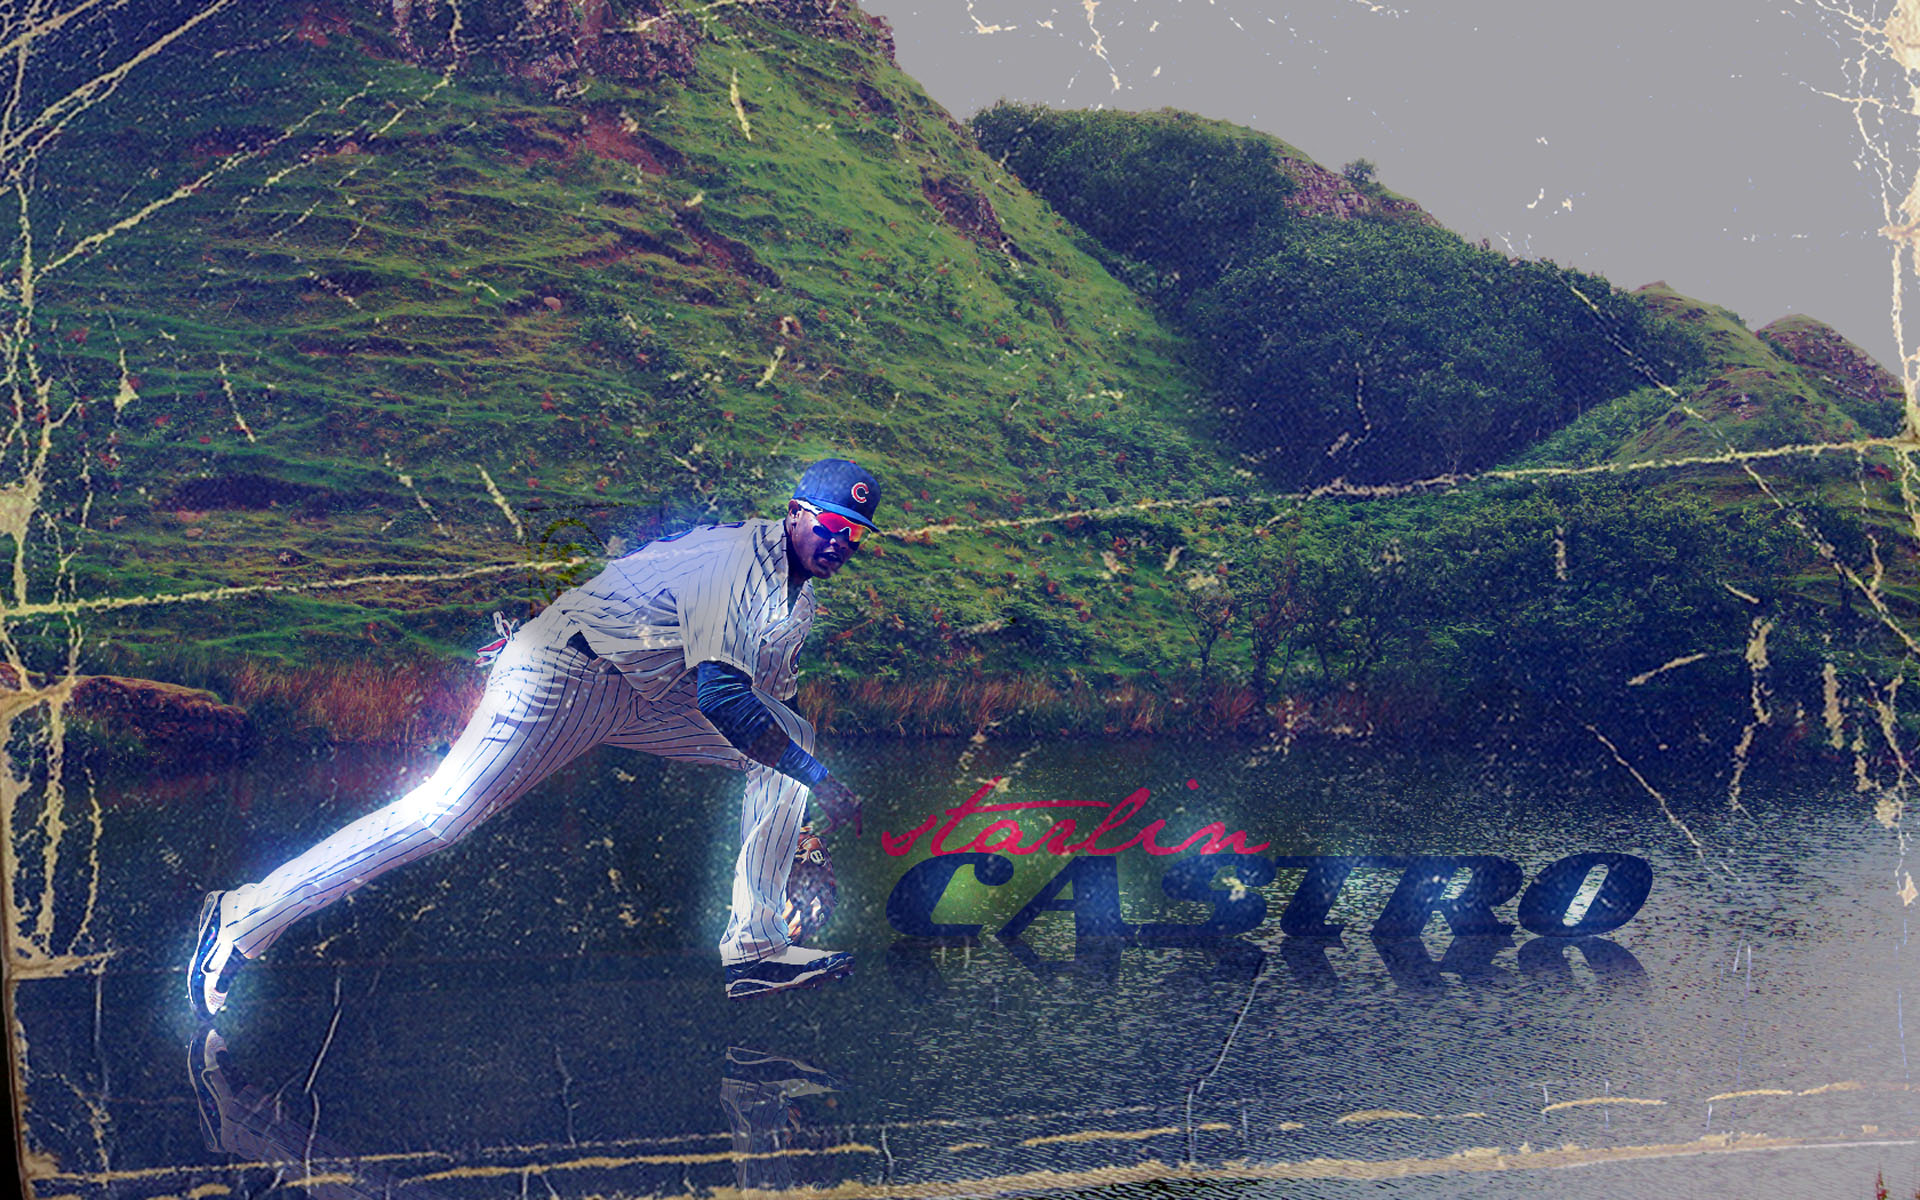 HD Chicago Cubs Backgrounds Wallpaper 1920x1200